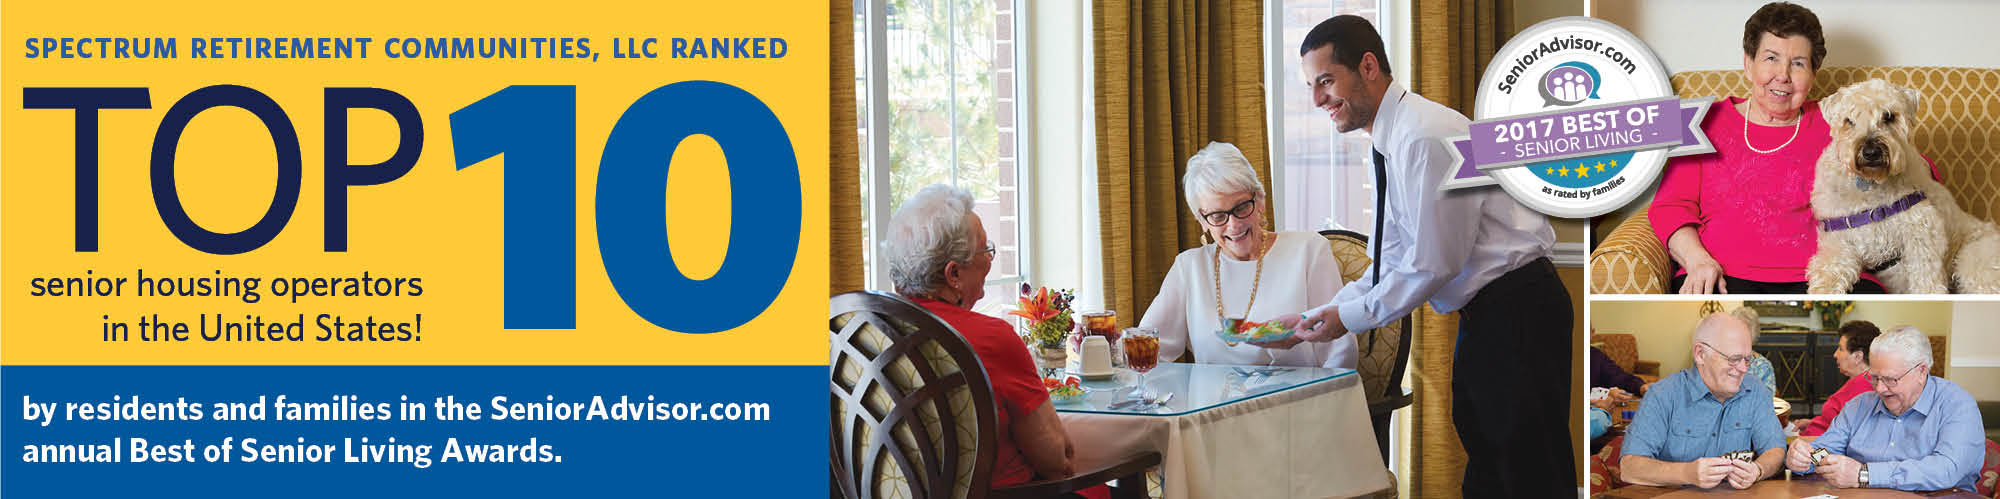 Burr Ridge Senior Living is among the Top 10 Senior Housing Operators in the United States